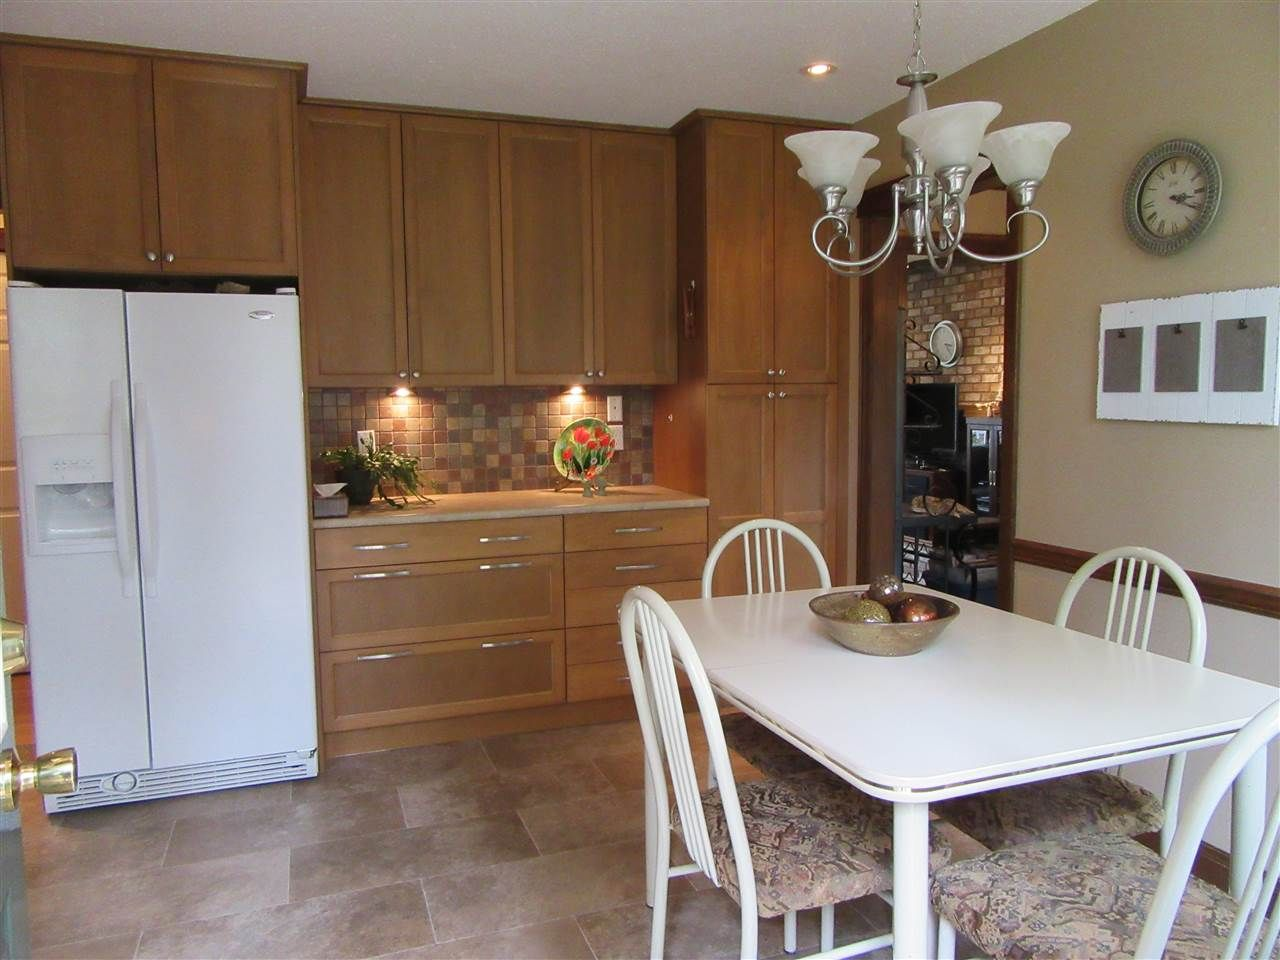 """Photo 10: Photos: 2751 WILDWOOD Crescent in Prince George: Hart Highlands House for sale in """"HART HIGHLANDS"""" (PG City North (Zone 73))  : MLS®# R2393133"""